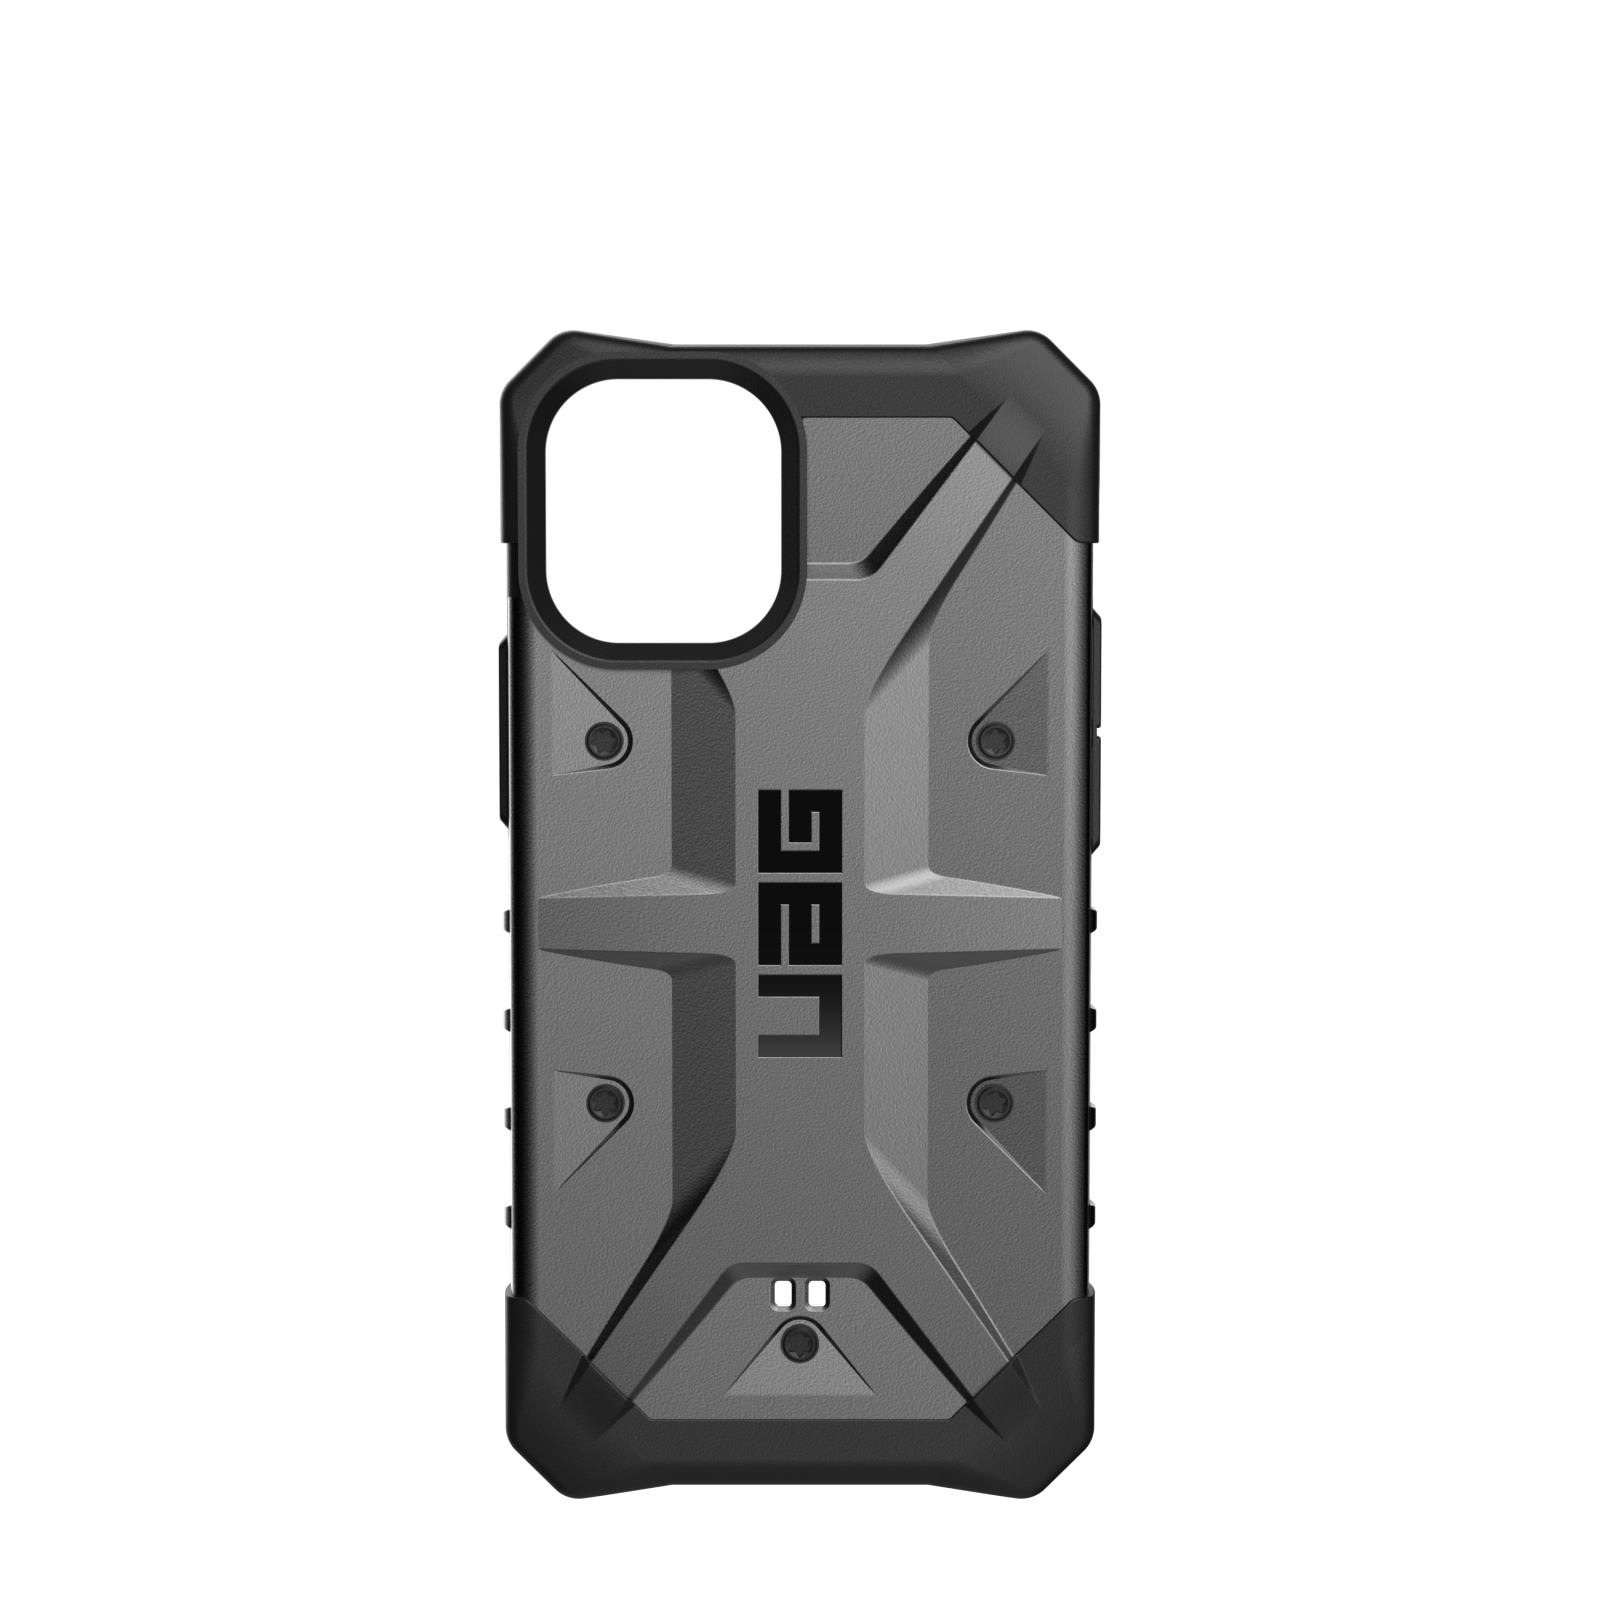 ỐP LƯNG UAG PATHFINDER CHO IPHONE 12 MINI [5.4-INCH] - Silver